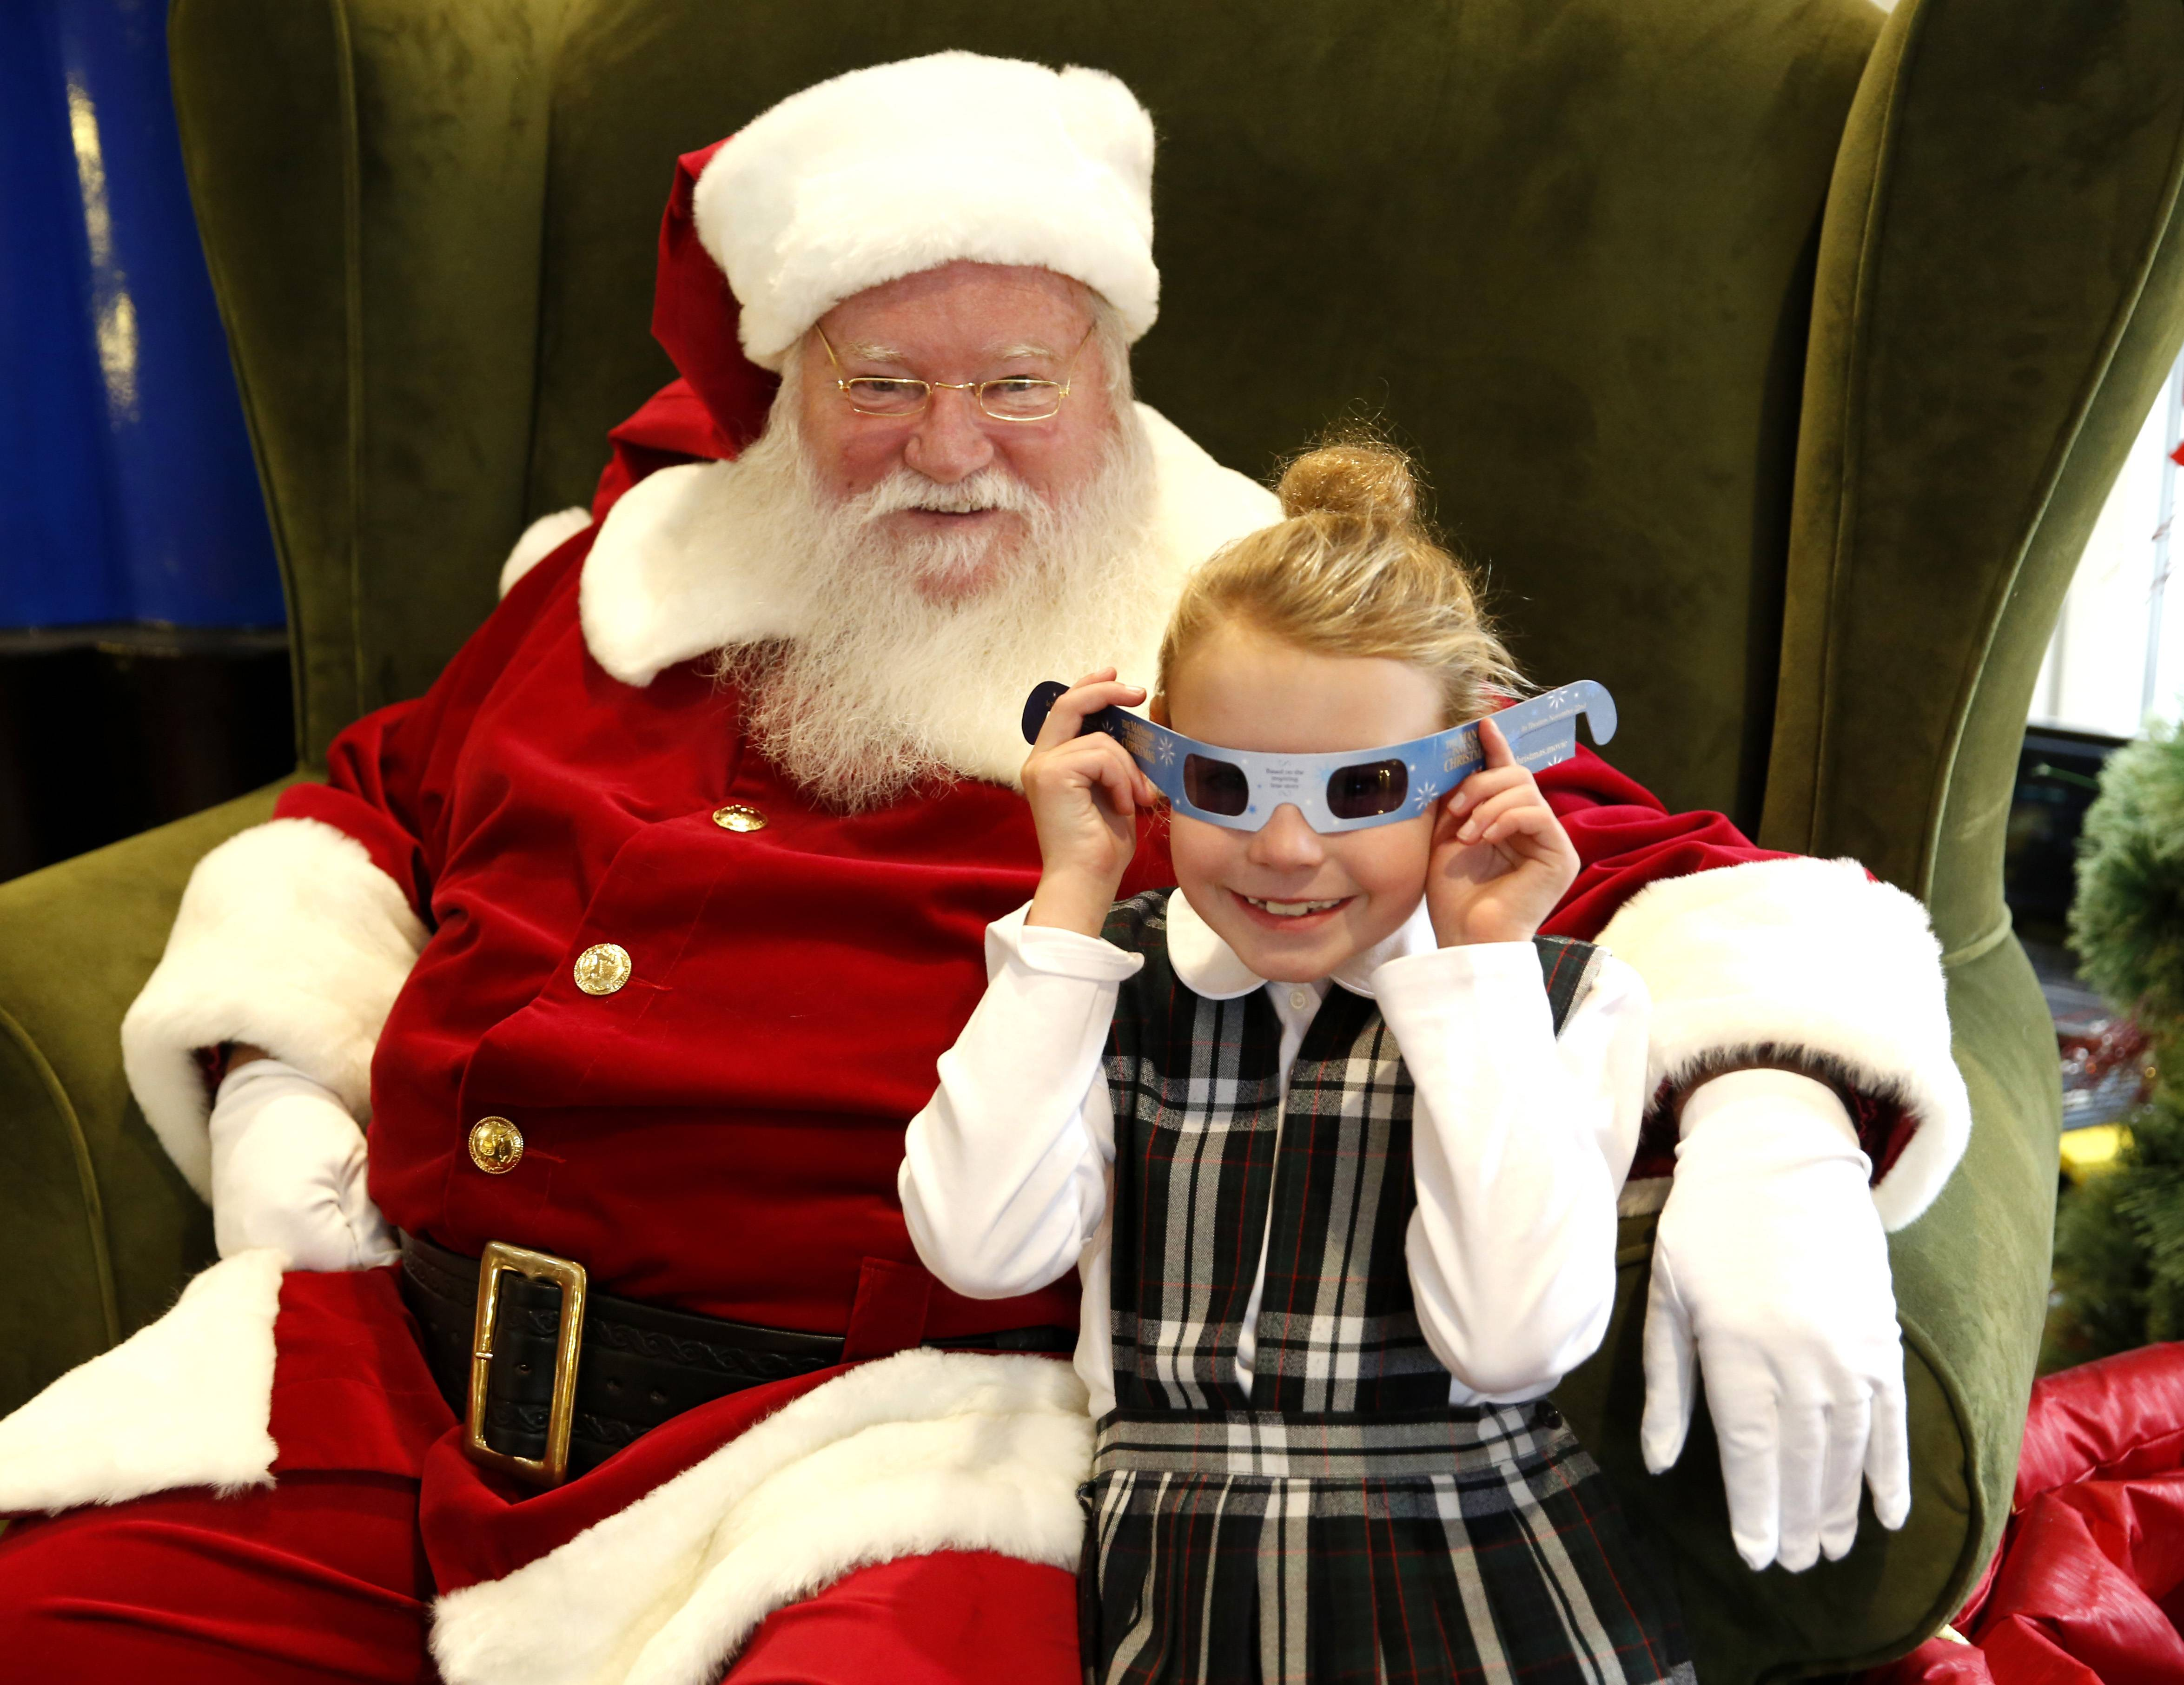 Katelyn O'Toole, a 9-year-old who lives in LaGrange, visits Santa at Oakbrook Center.